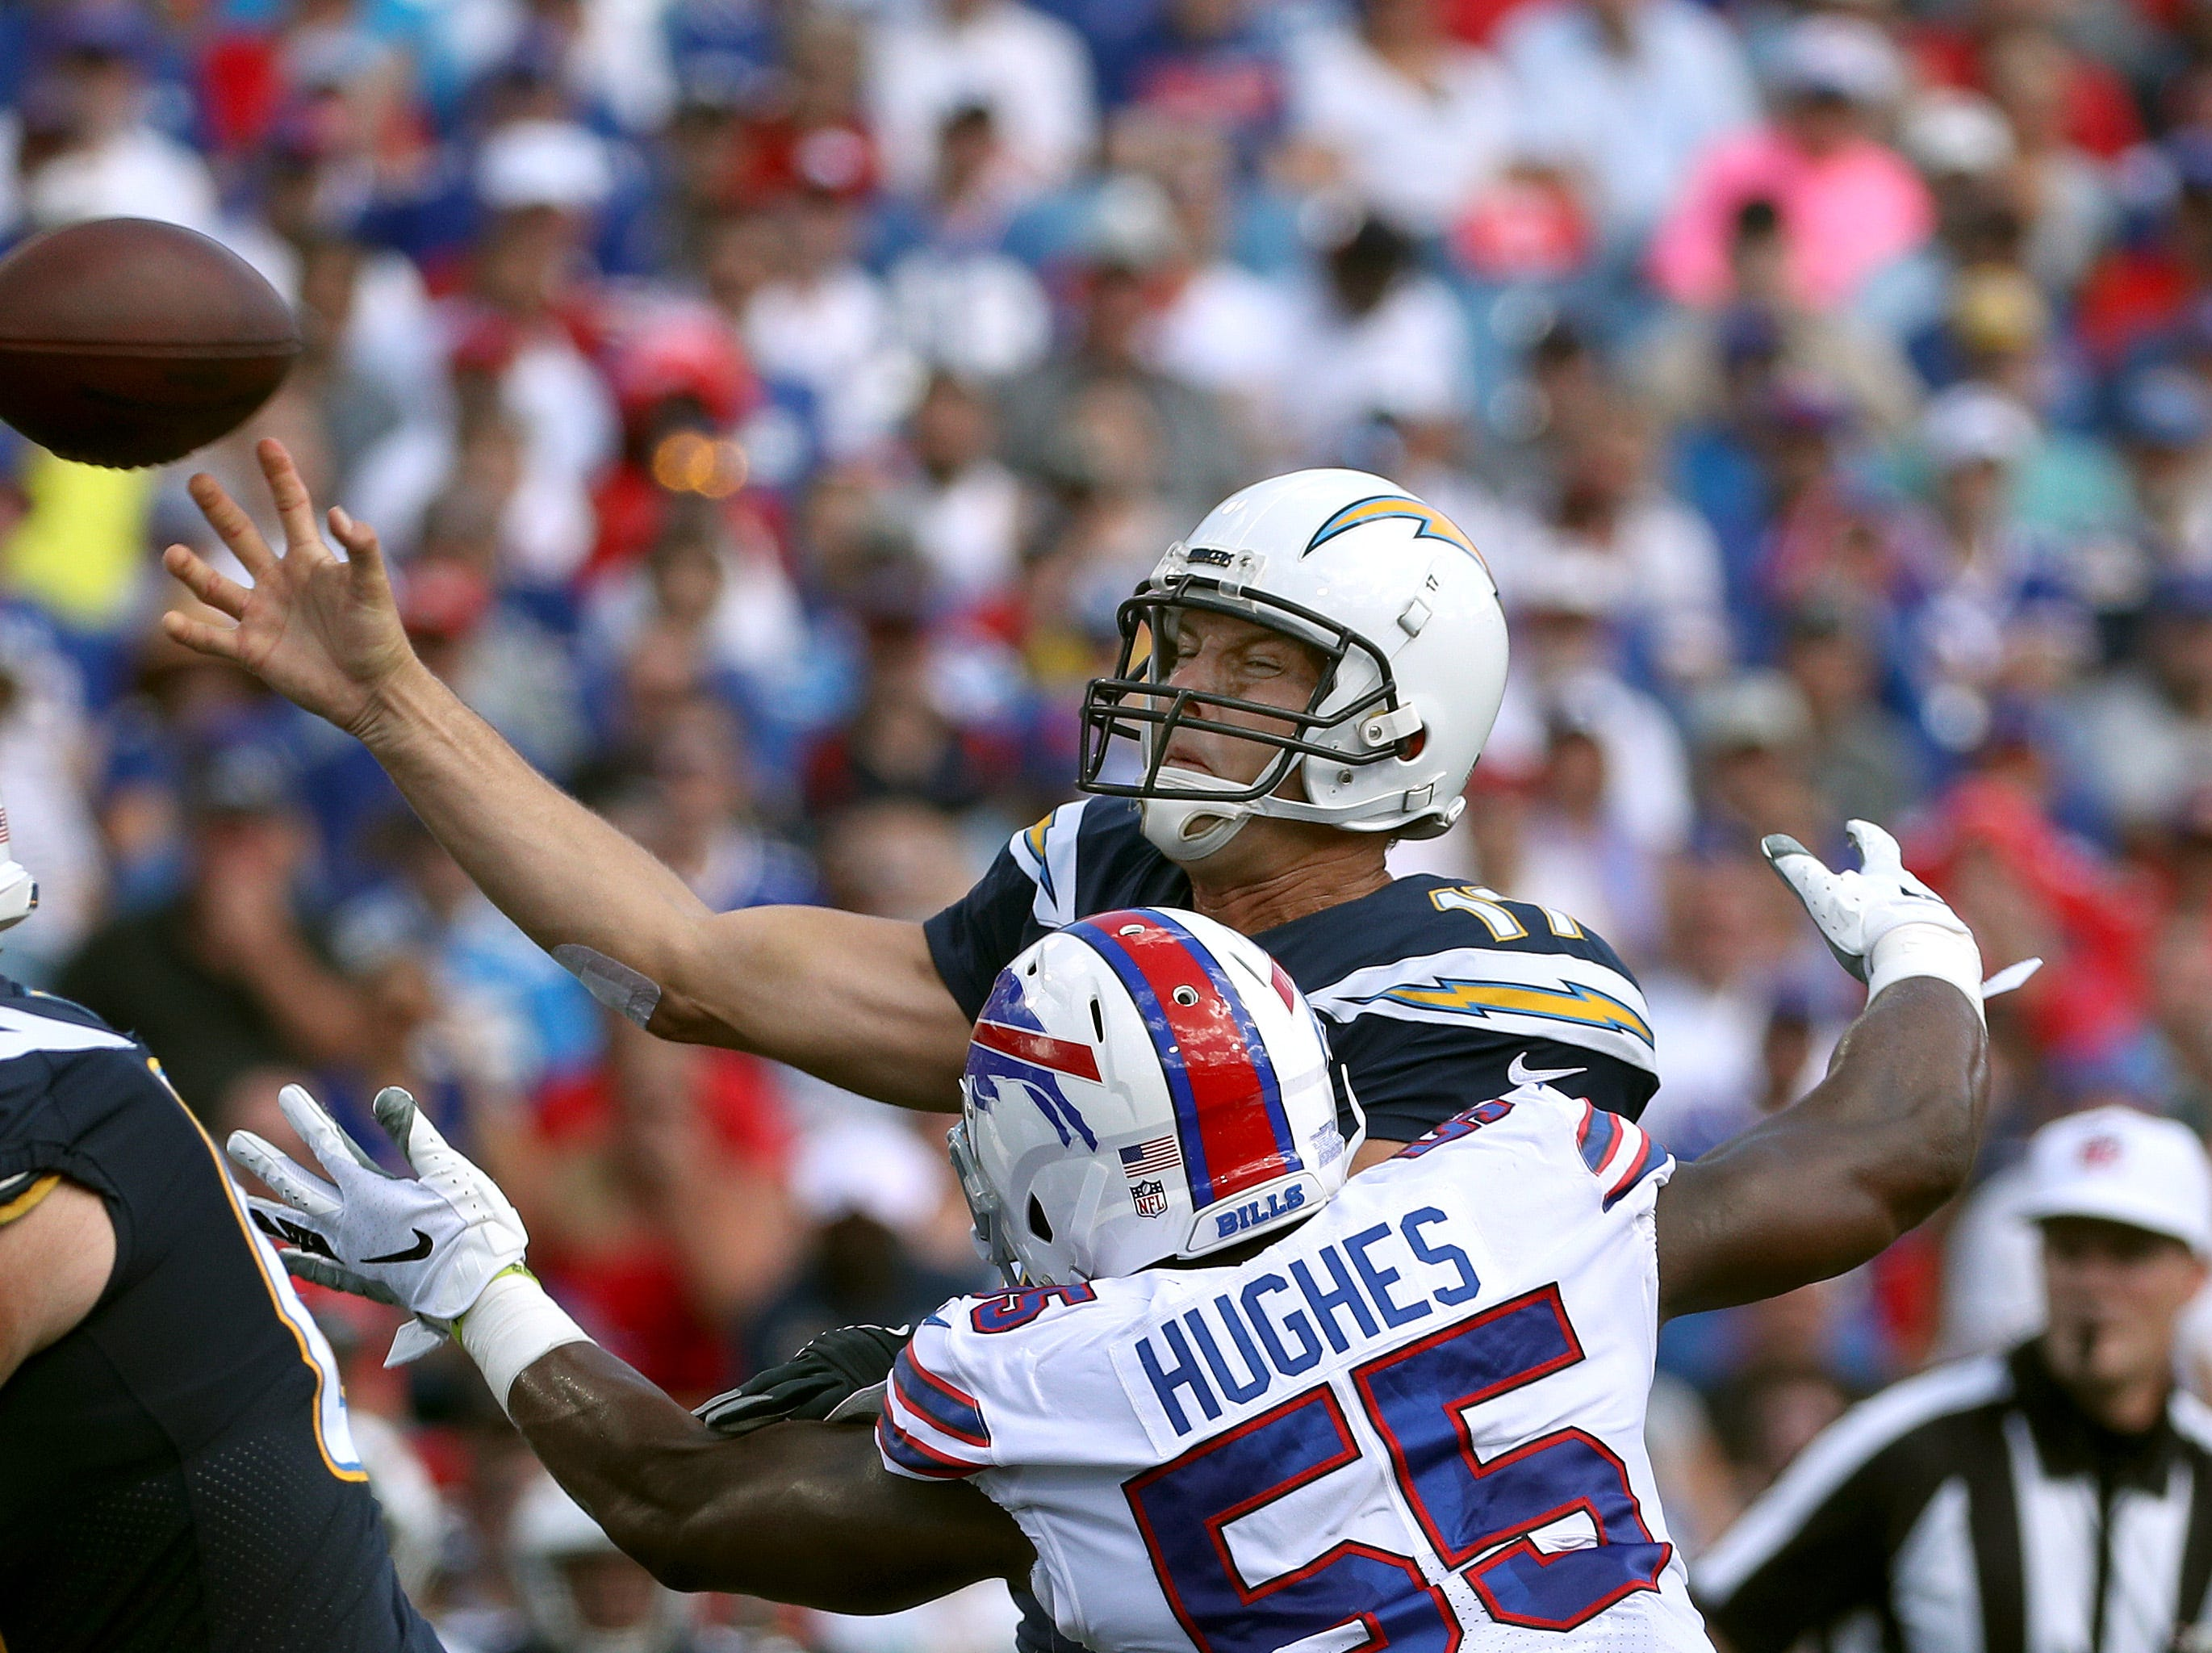 Chargers quarterback Philip Rivers delivers the ball as he is hit by Bills Jerry Hughes.